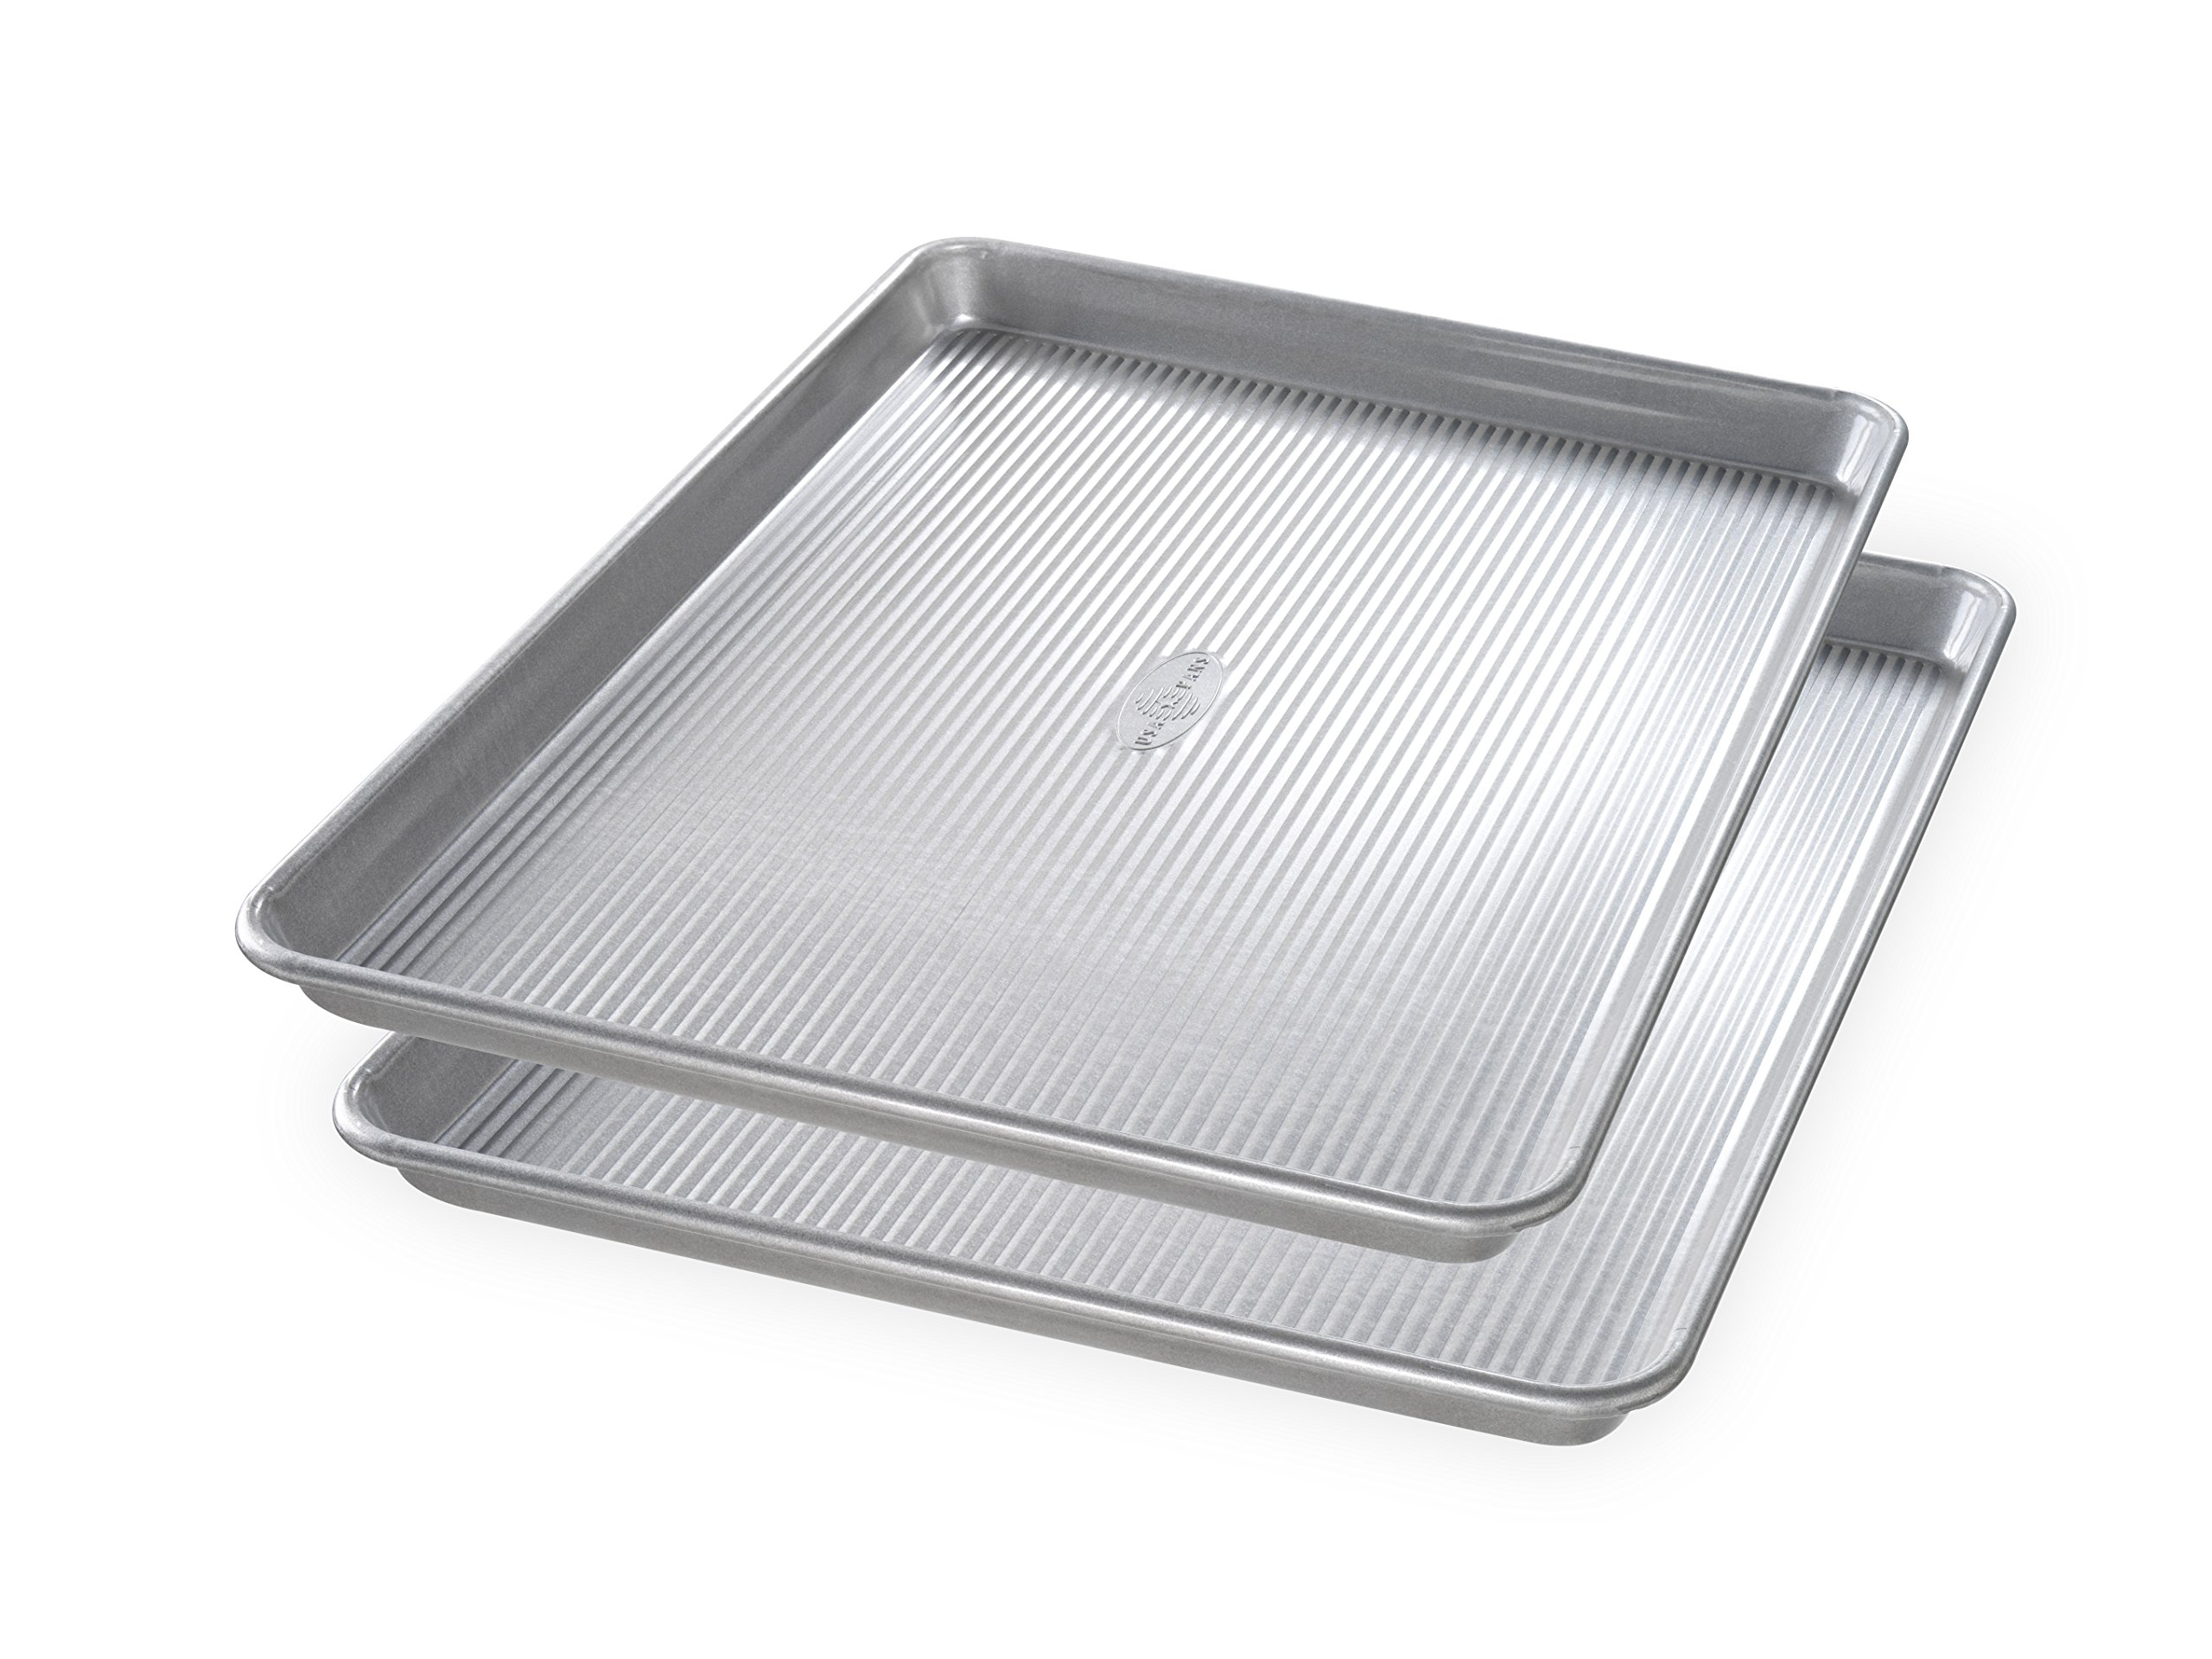 USA Pan Bakeware 1300ST Half Sheet Pan, Set of 2, Aluminized Steel by USA Pan